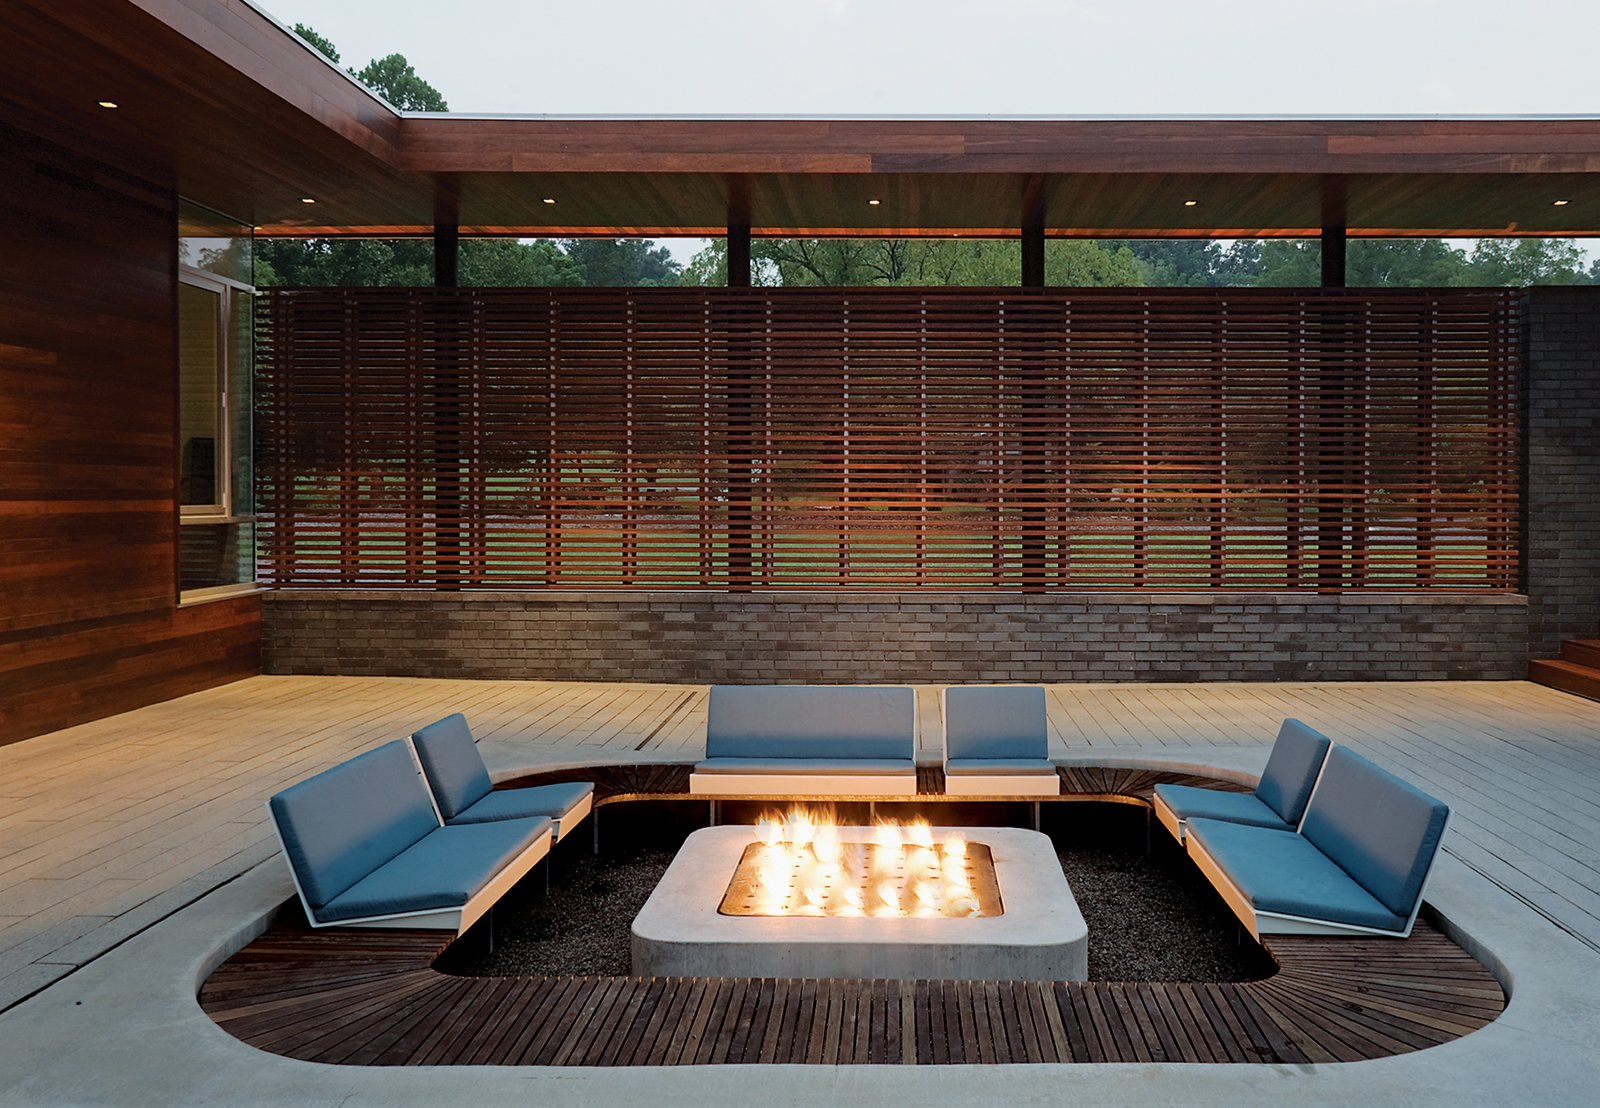 Taking cues from a Japanese-influenced slatted screen applied to the house's facade, Hufft Projects applied a ring of ipe wood around the perimeter of this outdoor firepit. Tagged: Outdoor, Back Yard, Concrete Patio, Porch, Deck, Wood Patio, Porch, Deck, Horizontal Fence, and Wood Fence. Take it Outside With These 11 Spring-Friendly Deck Spaces - Photo 11 of 11